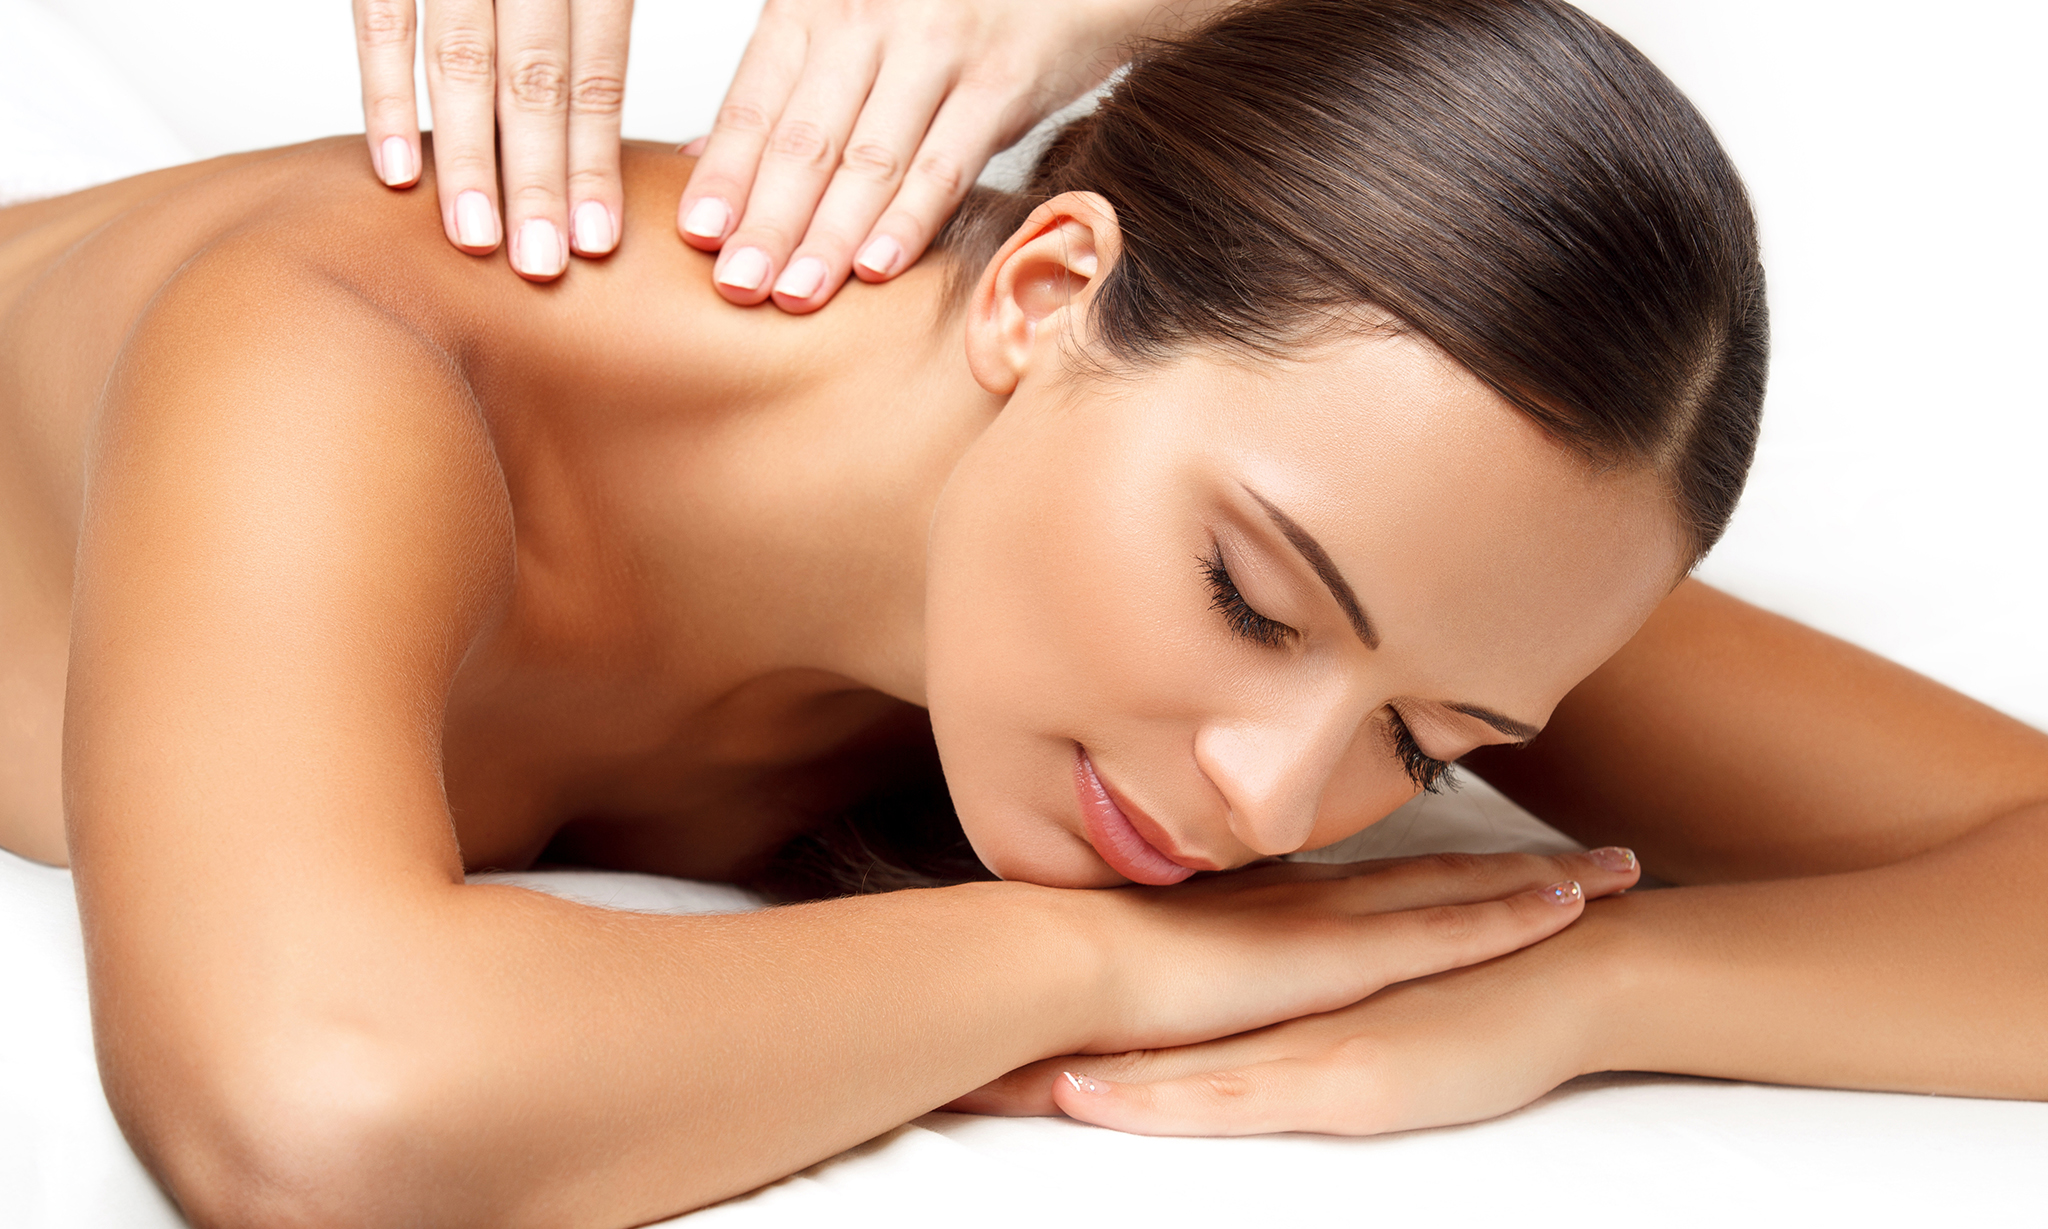 Where Can I Get Full Body Massage Full Body Massage Head Foot Massage With Shower At Arcadia Spa